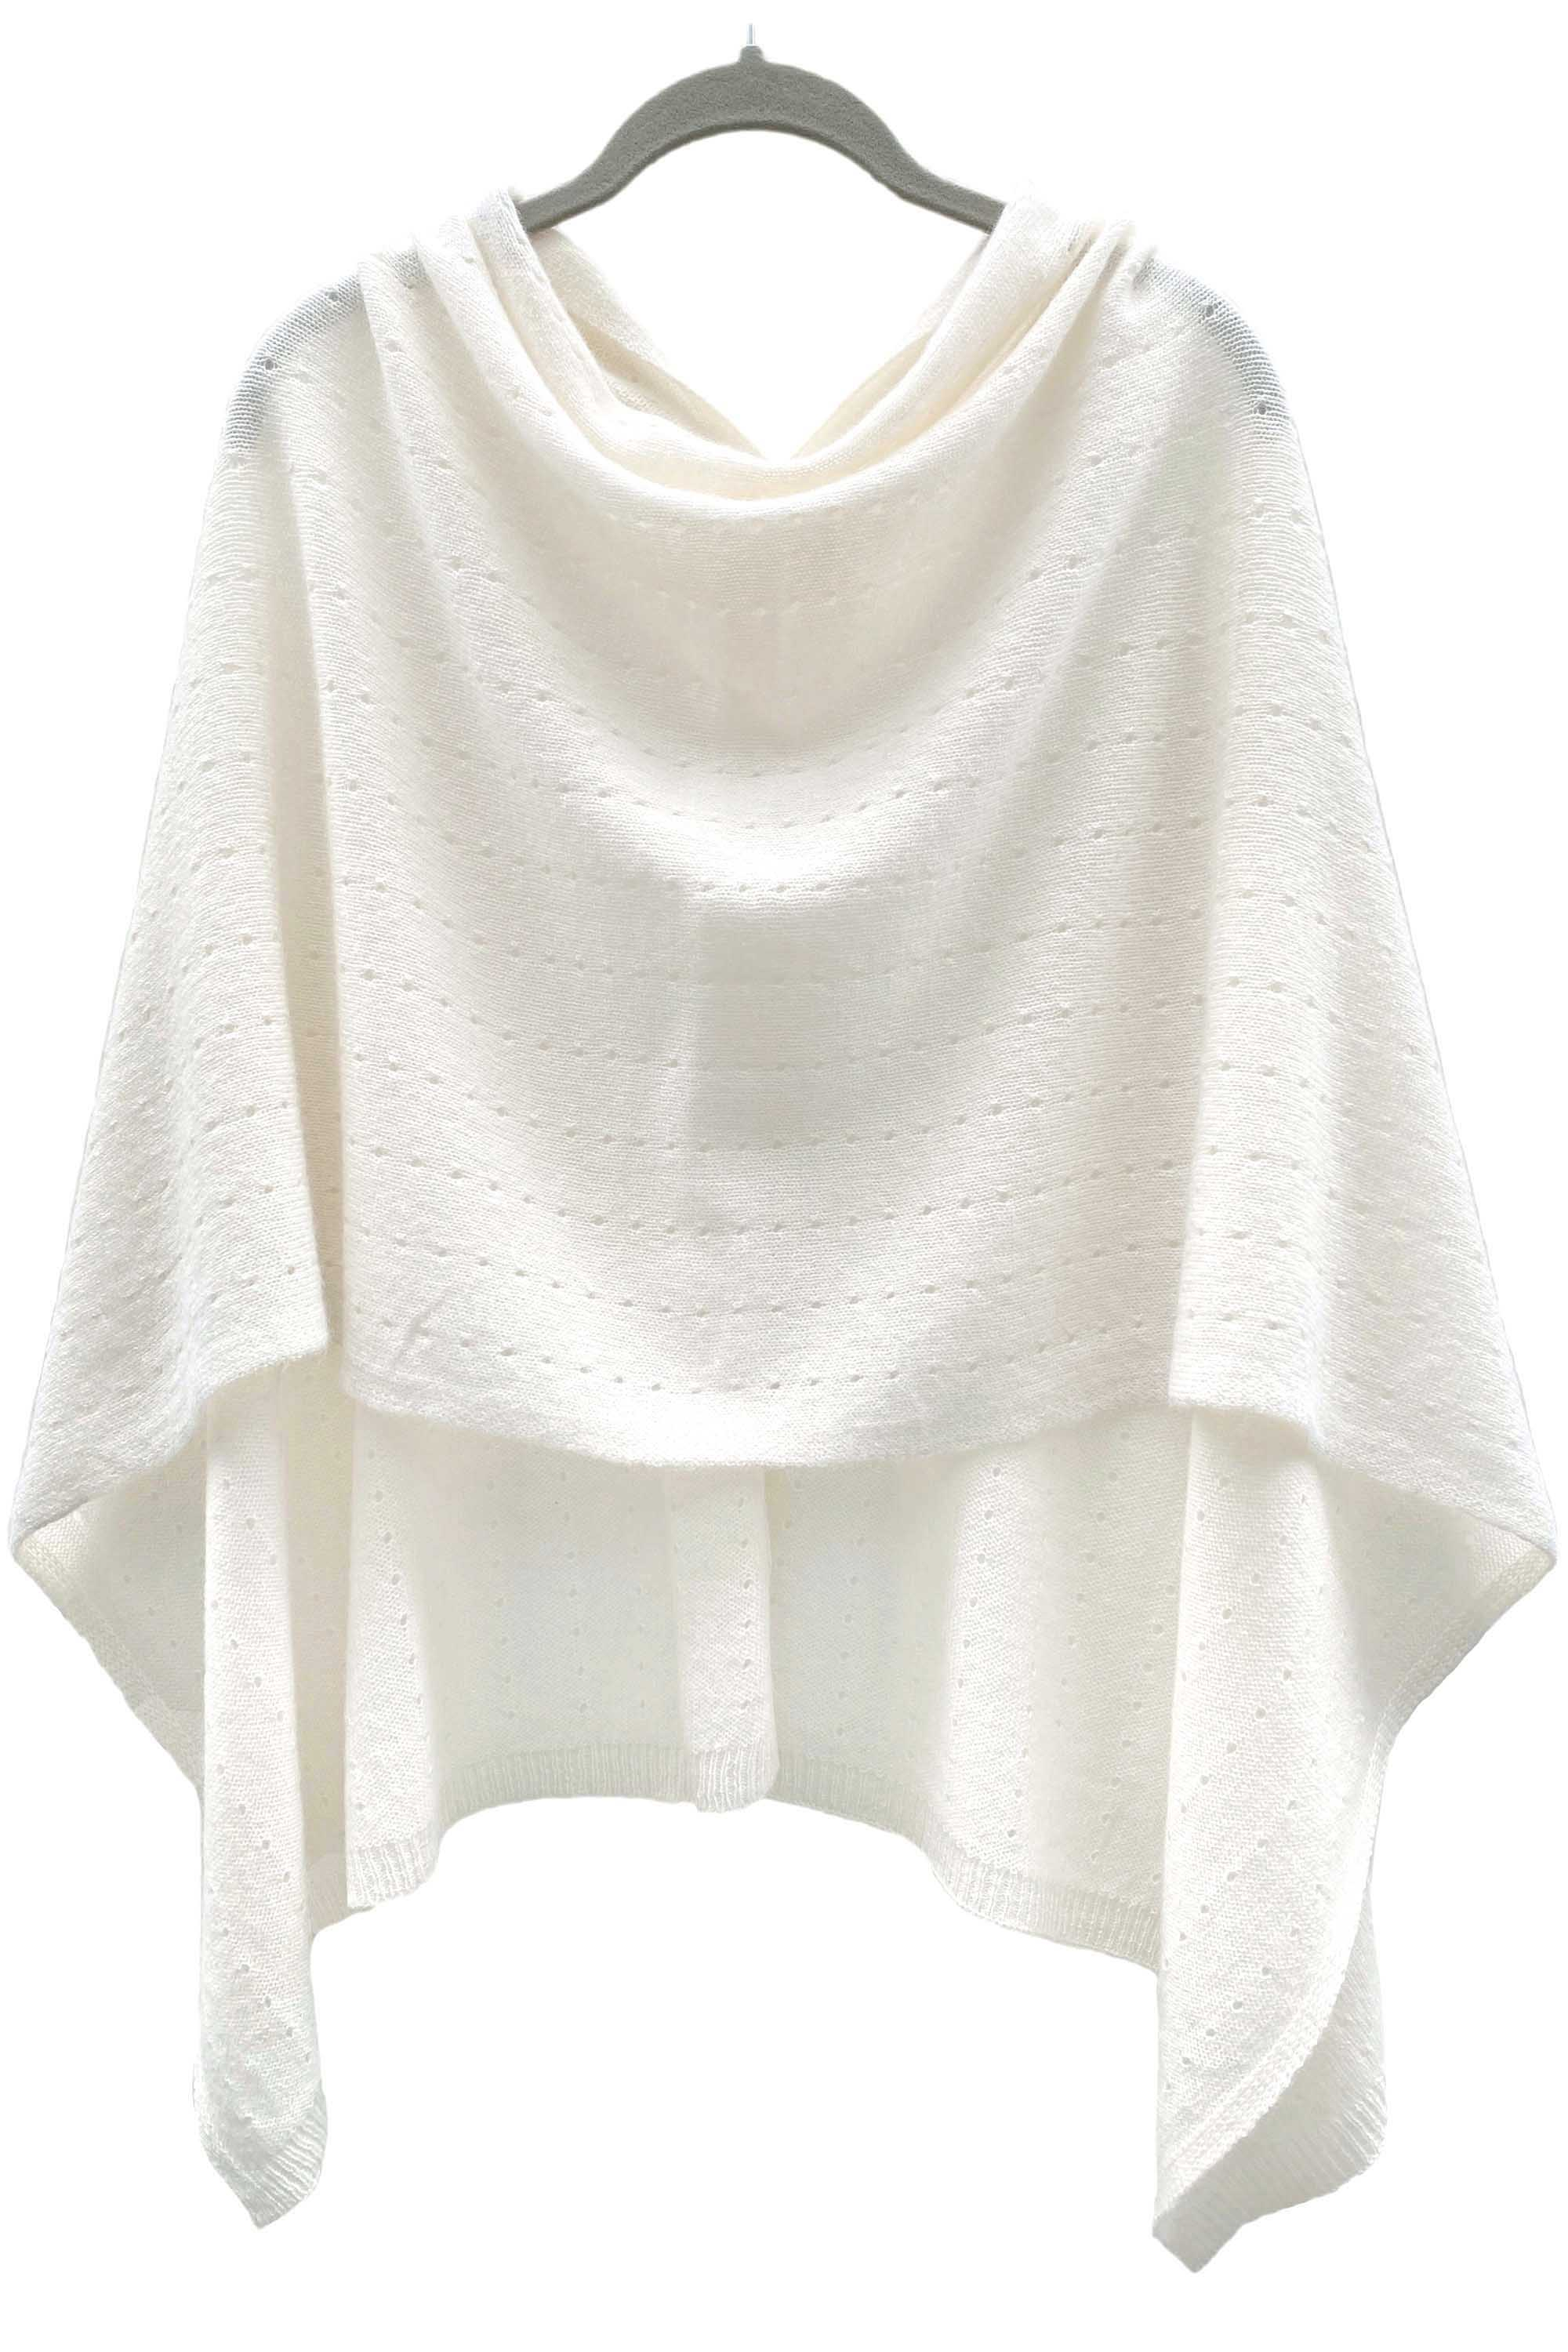 Cream Cashmere Poncho UK, winter white Women Wrap, Cape, Shawls, Scarf, shawl, cardigan, light weight, summer poncho, ladies small button poncho sweater sale | SEMON Cashmere